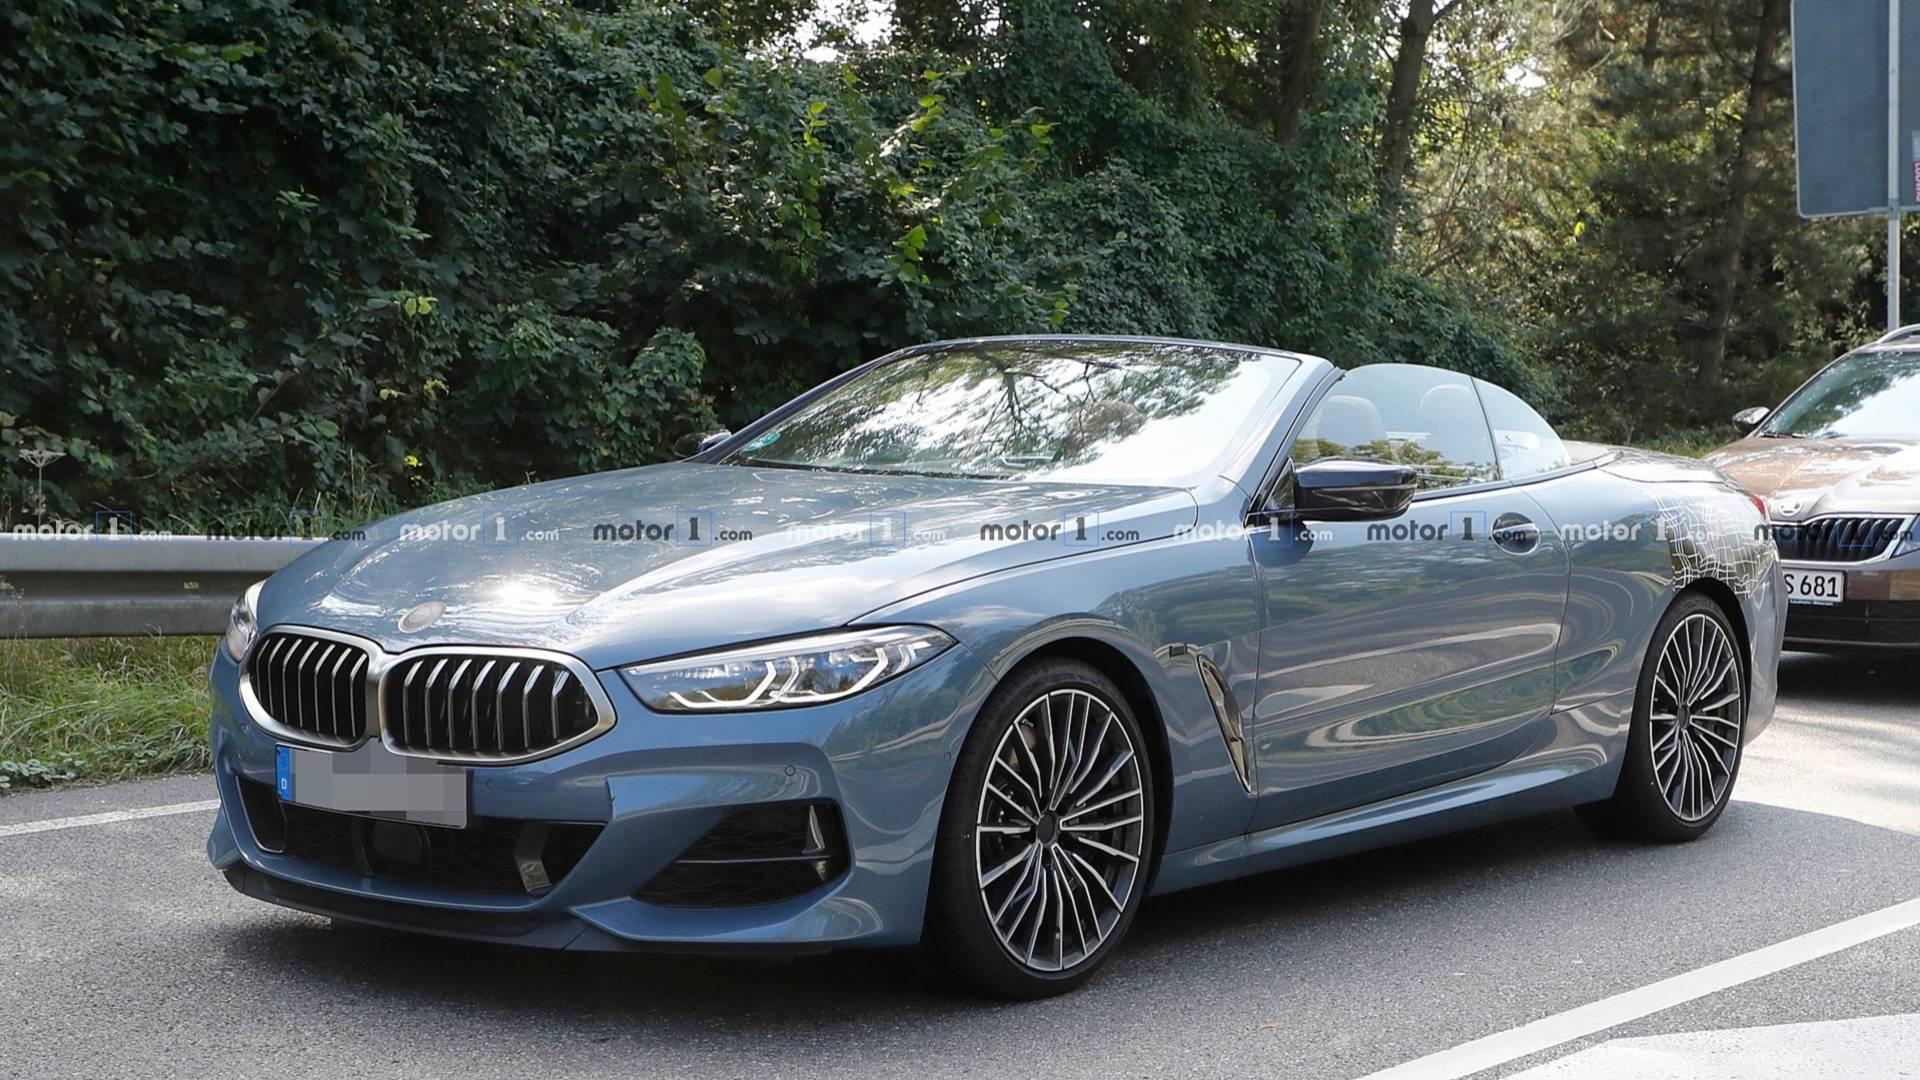 Bmw 8 Series Convertible Nearly Naked In New Spy Photos